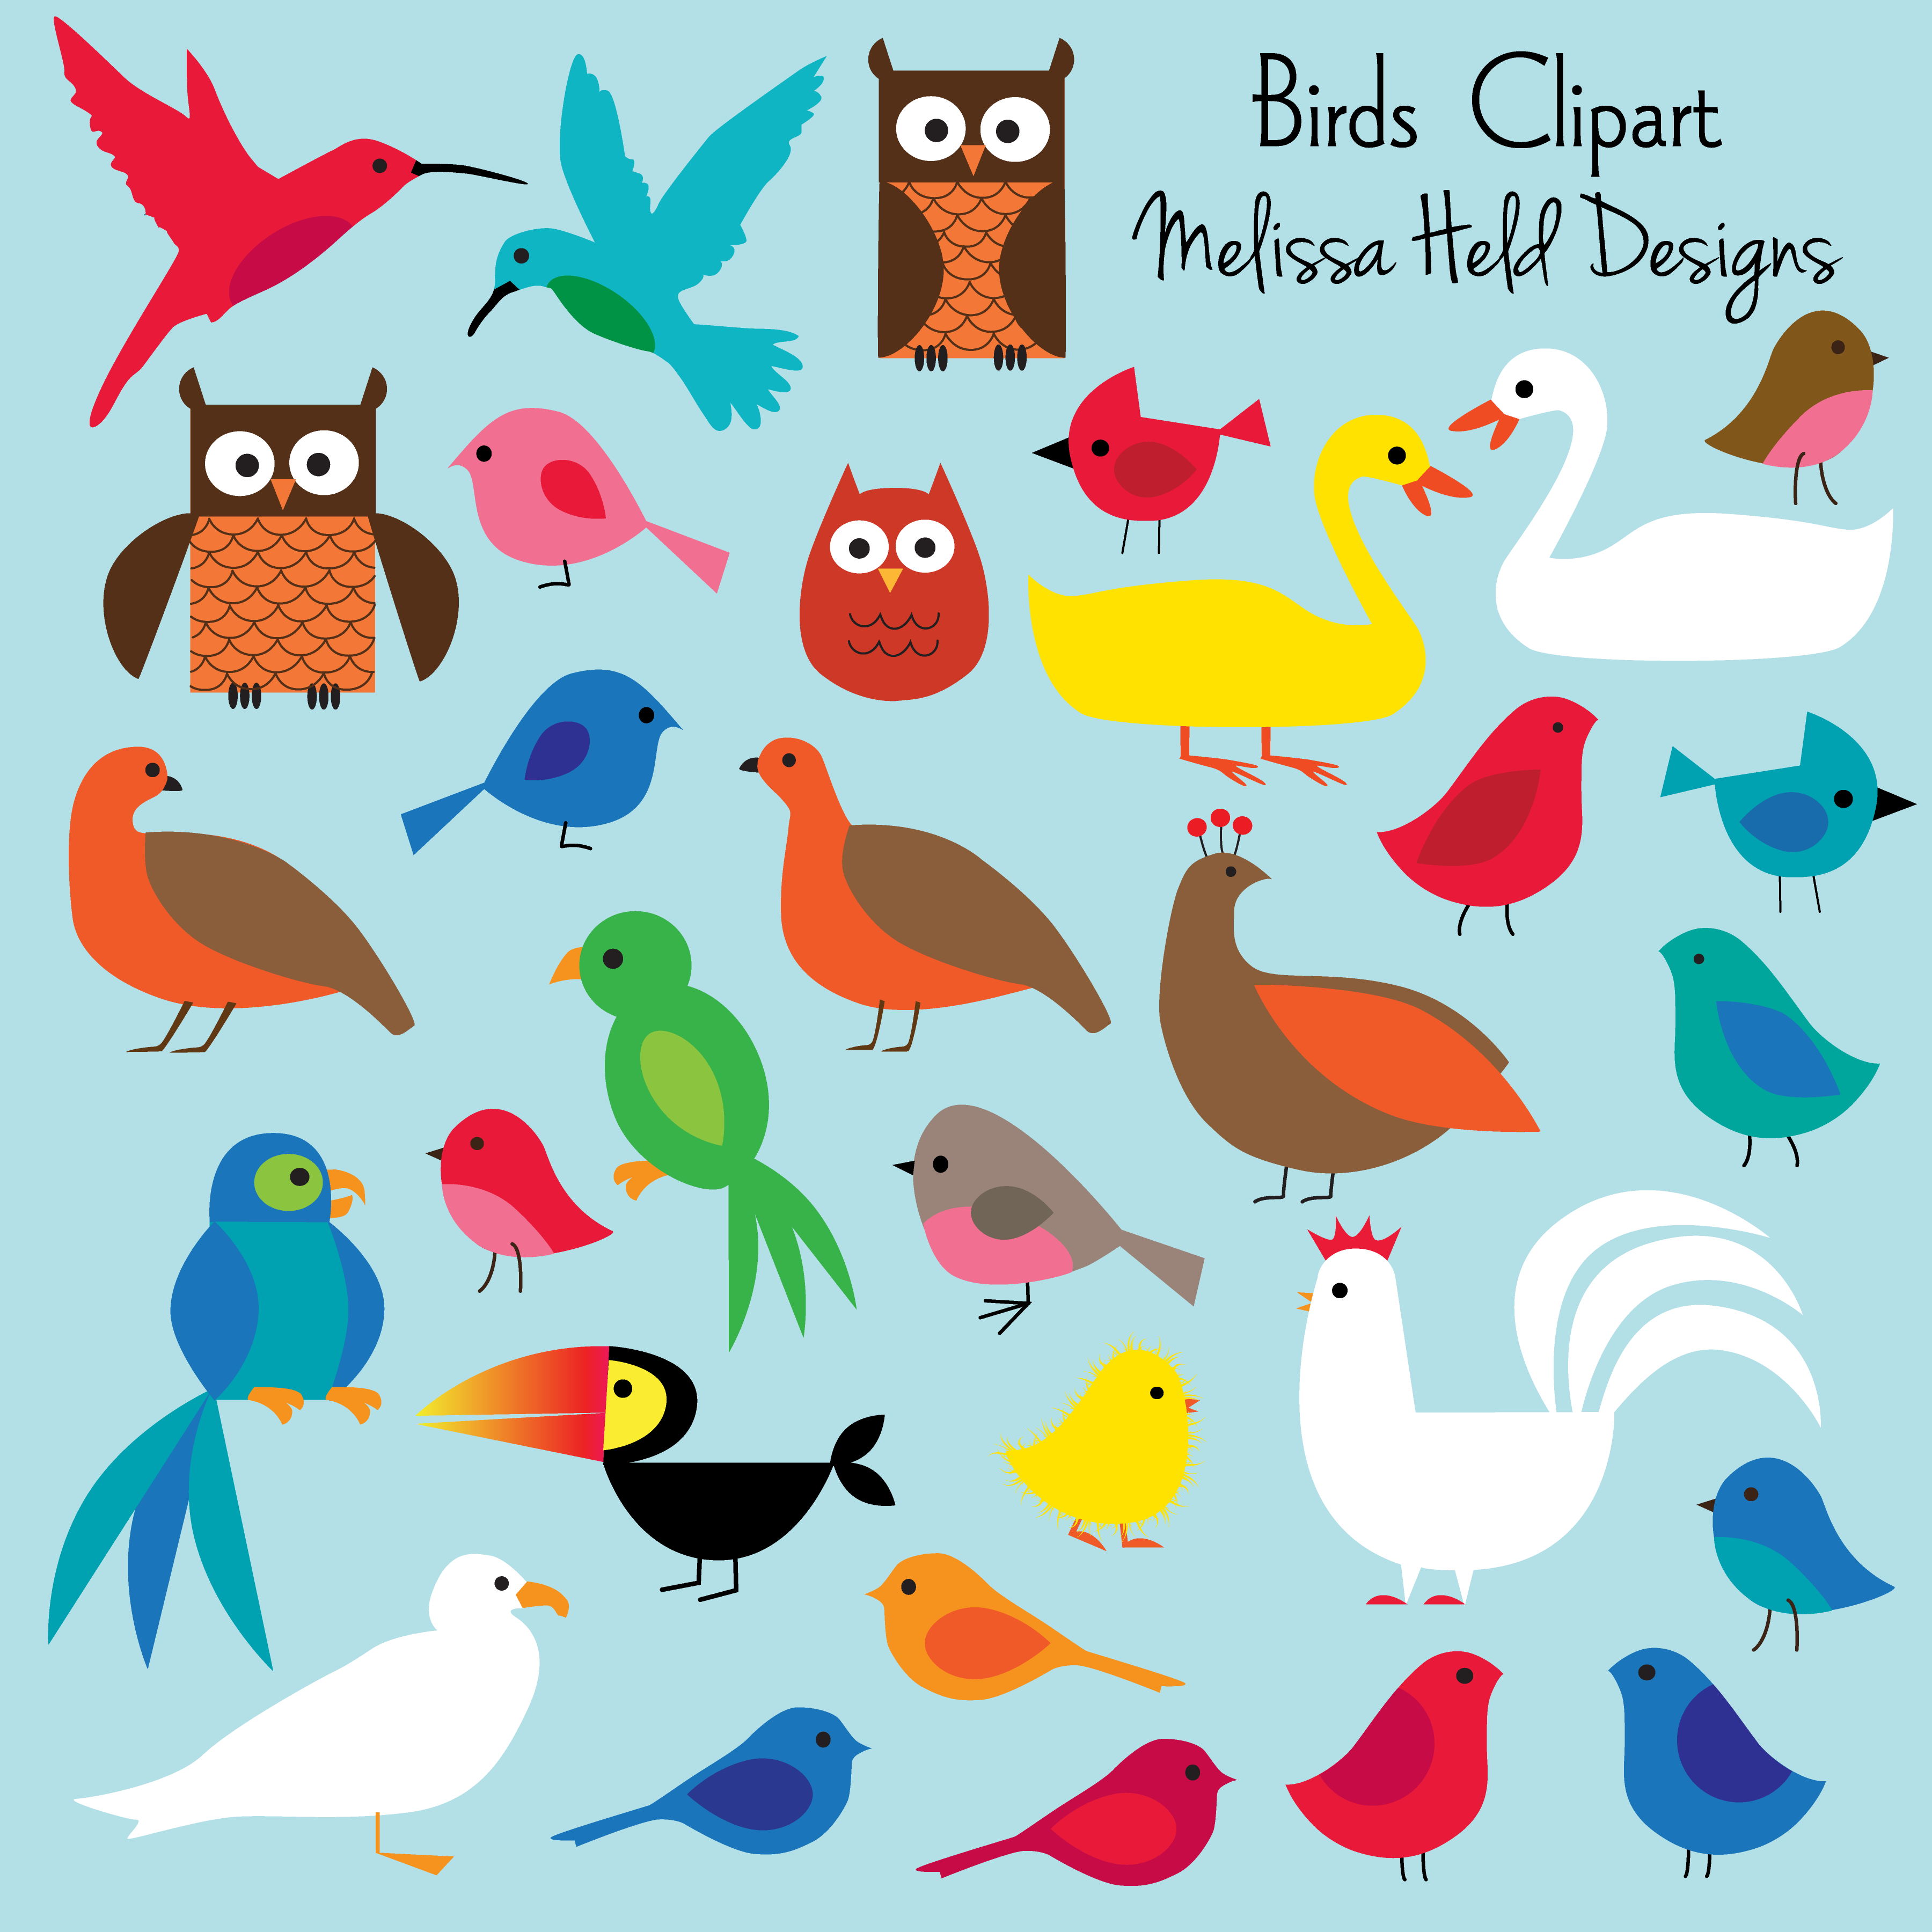 Free Images Chickens, Download Free Clip Art, Free Clip Art on Clipart  Library